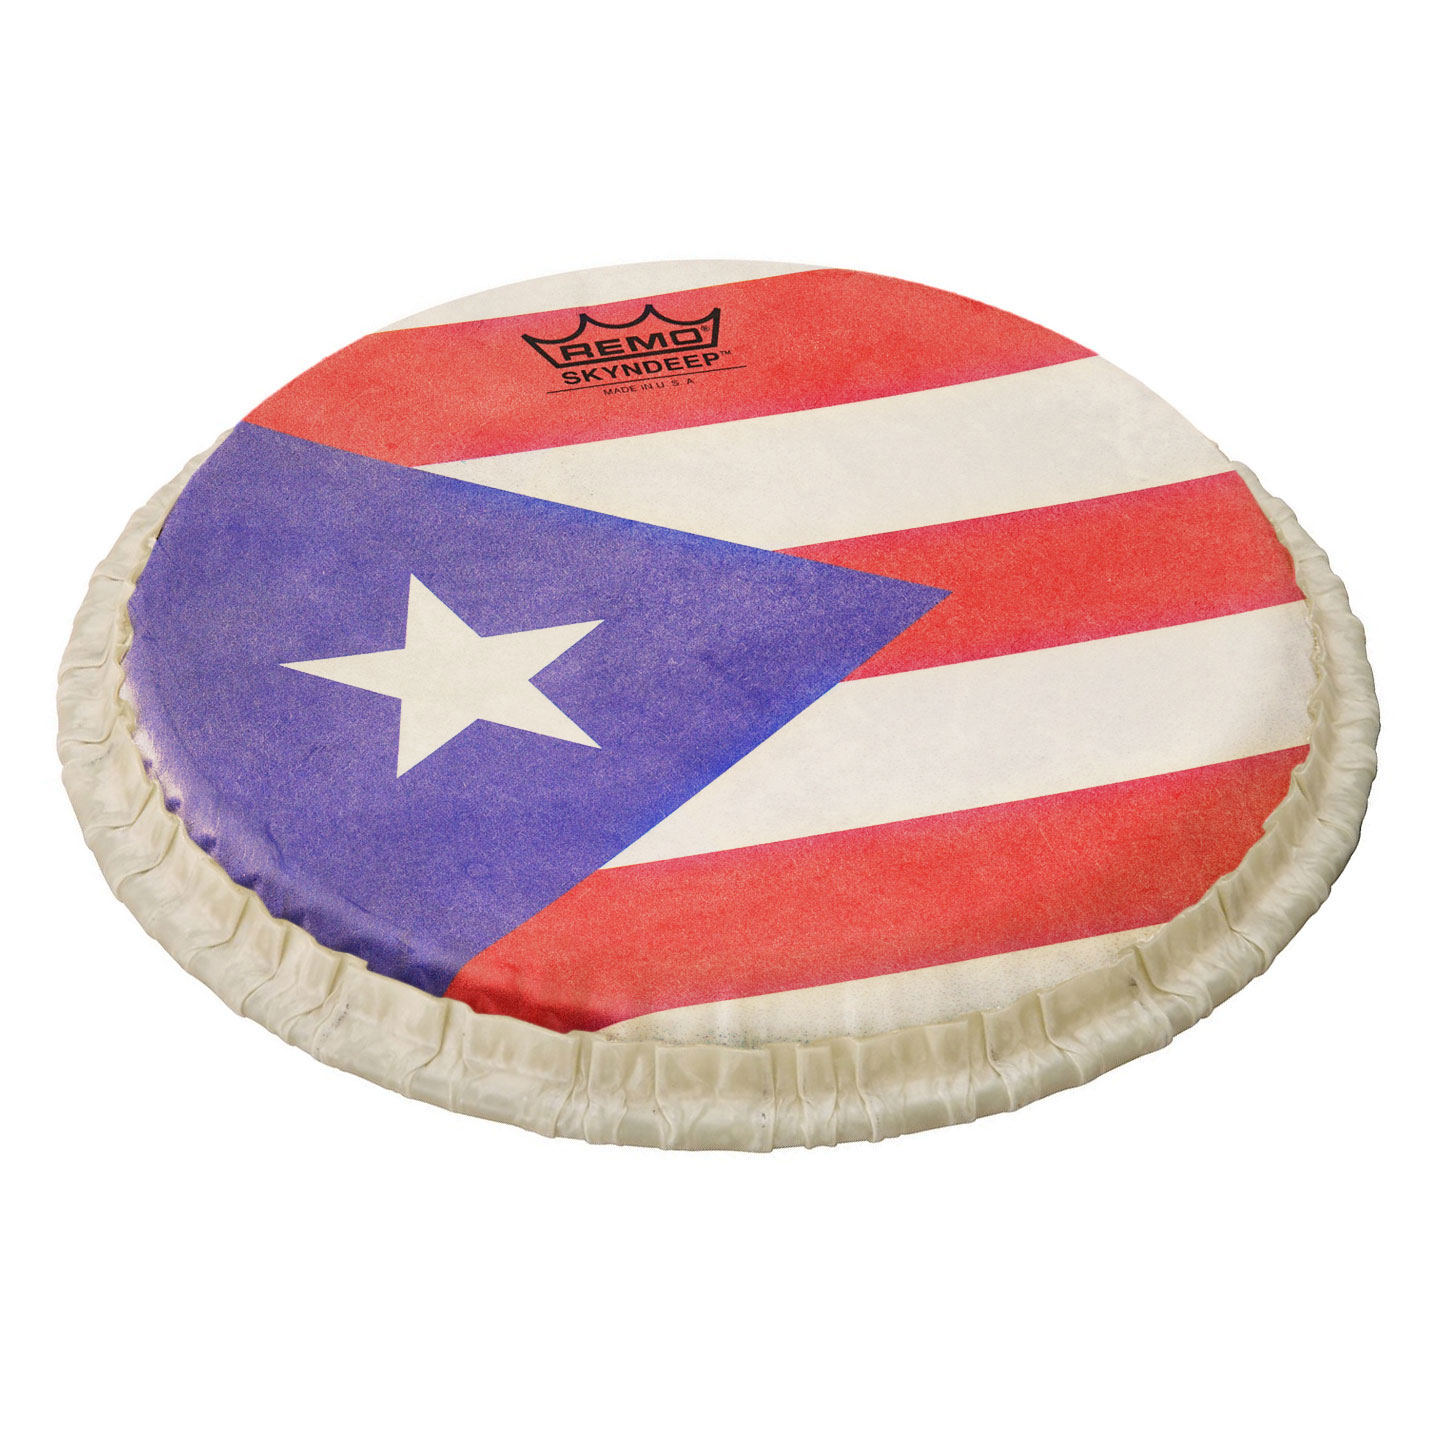 """Remo 12.5"""" Tucked Skyndeep Conga Drum Head with Puerto Rican Flag Graphic"""